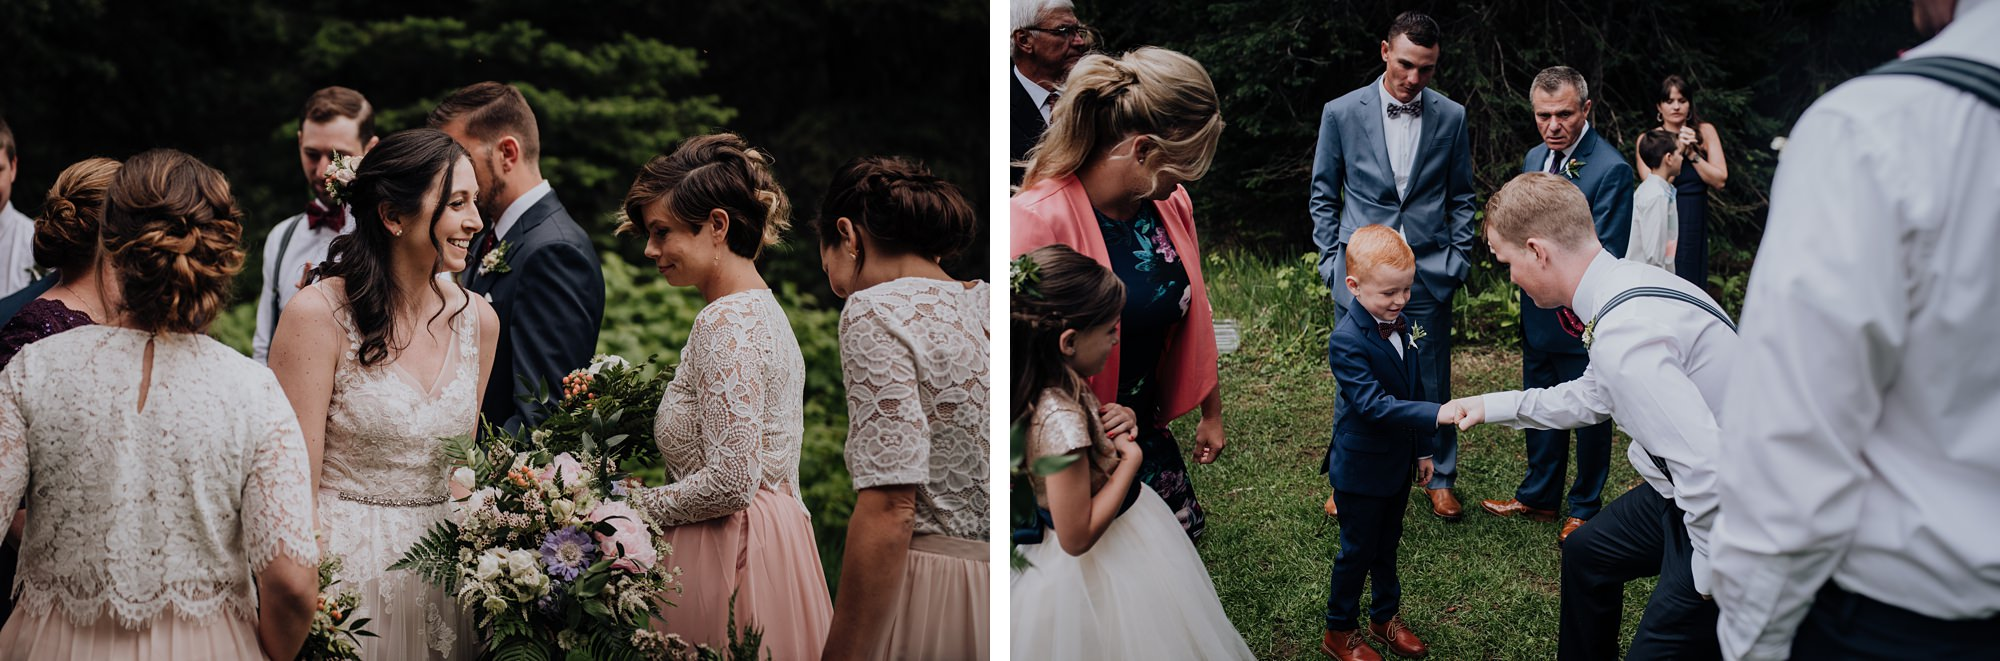 candid shots at mountain wedding